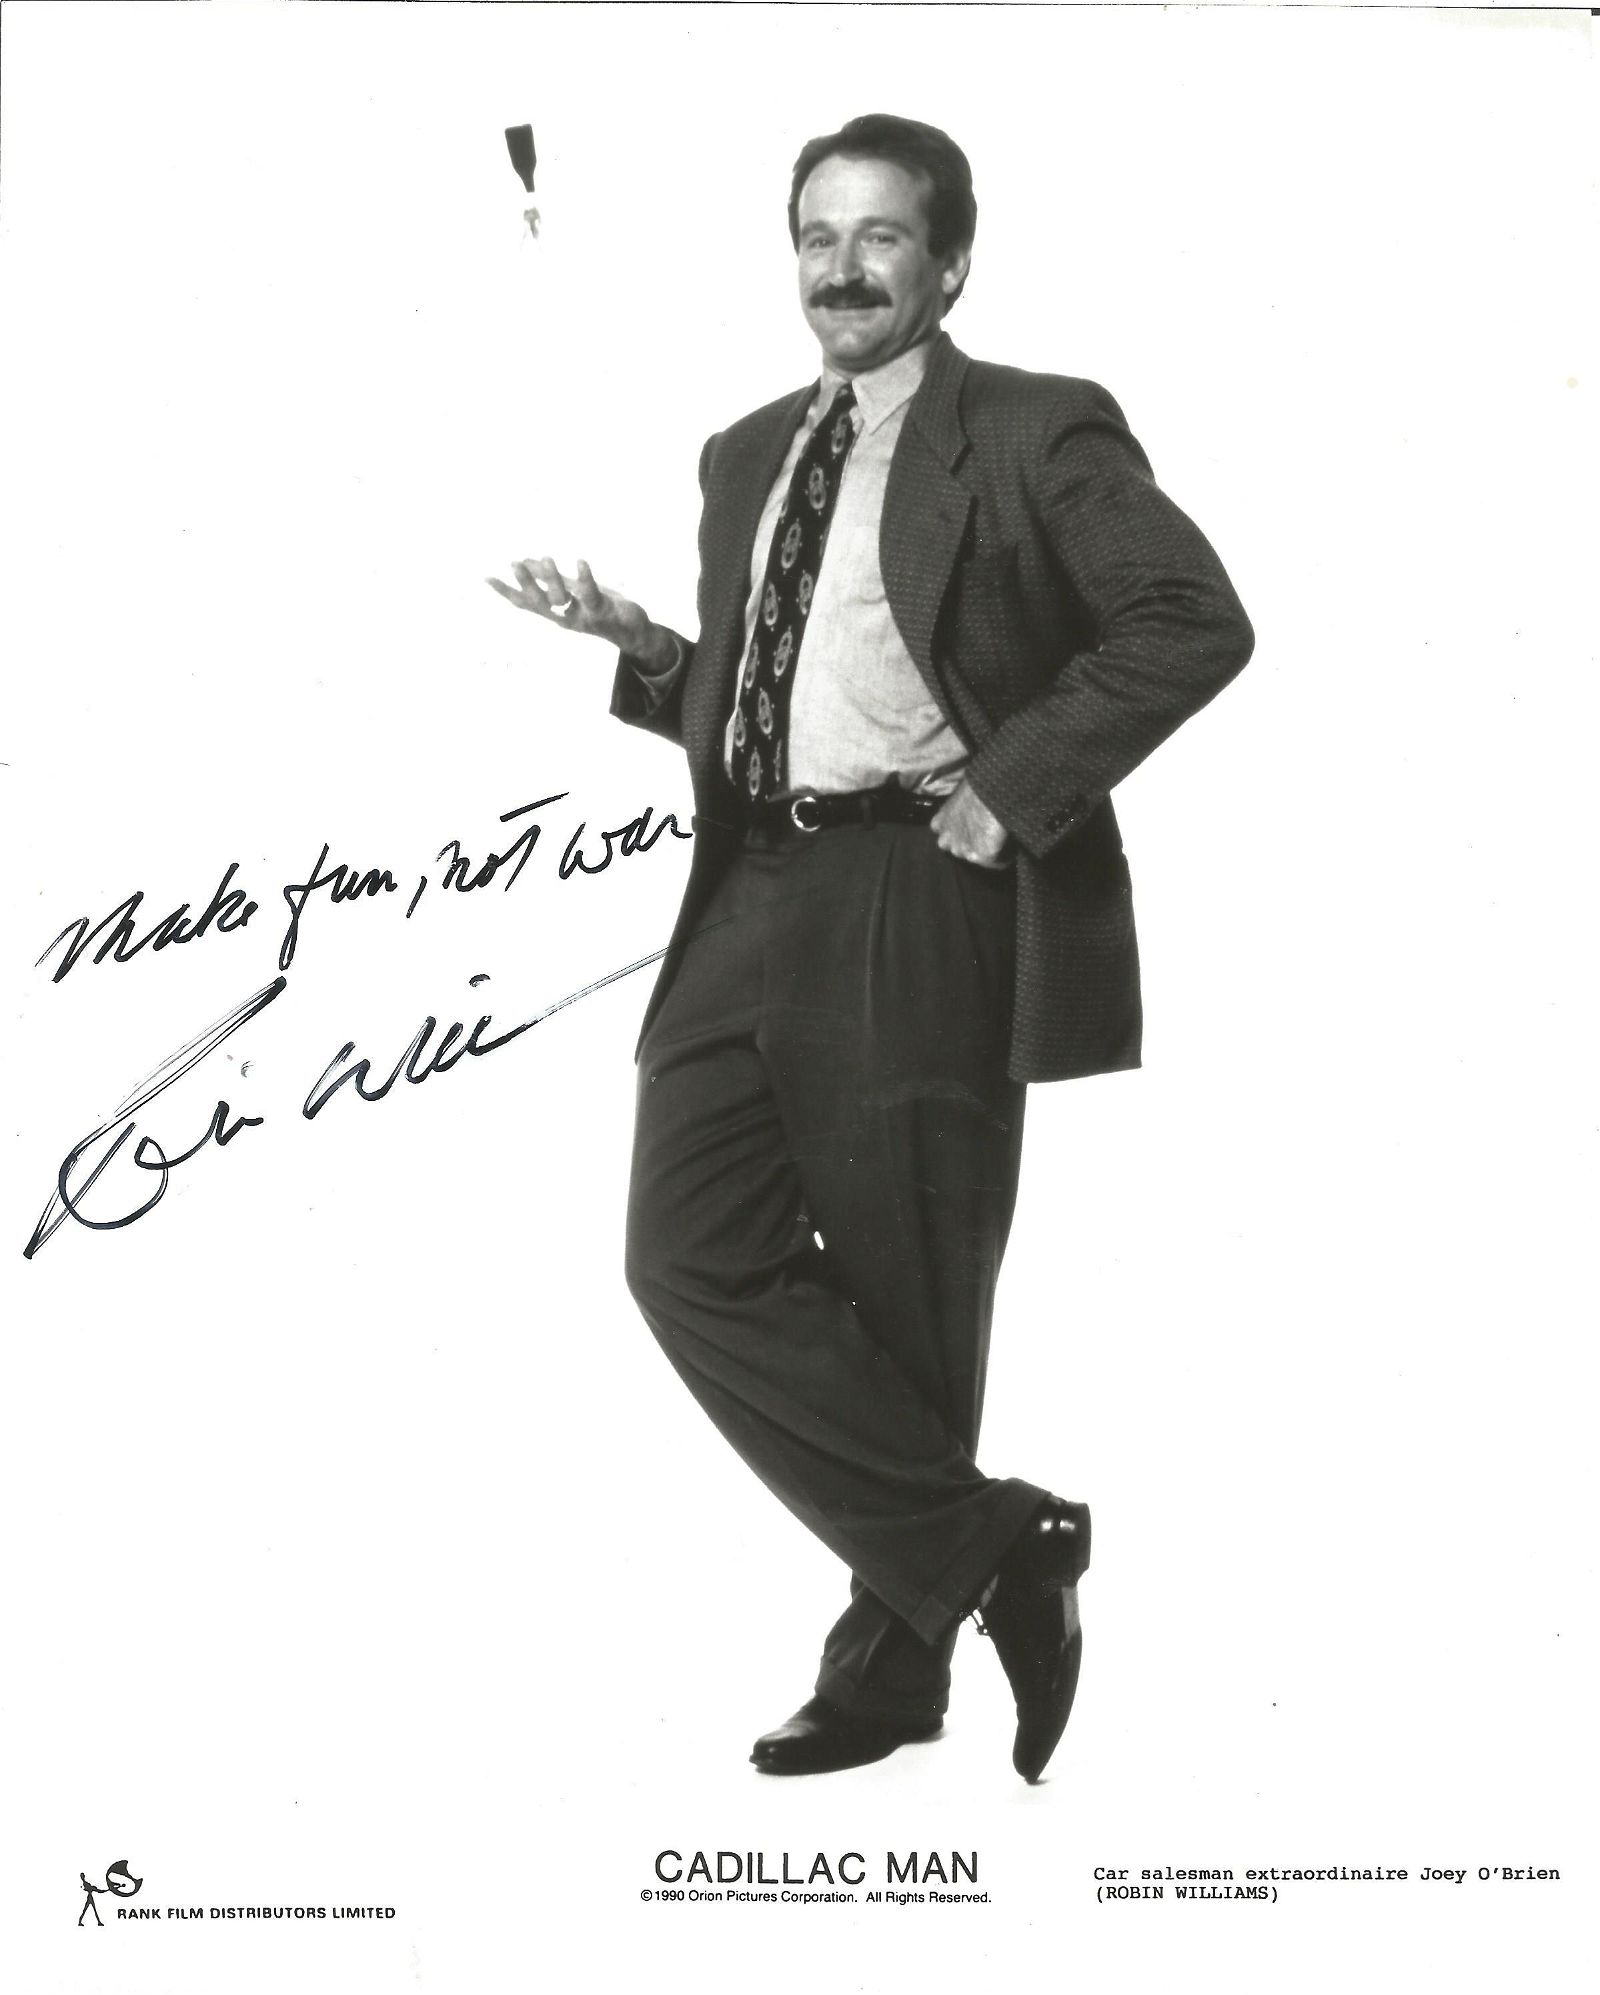 Robin Williams signed 10x8 Cadillac Man black and white